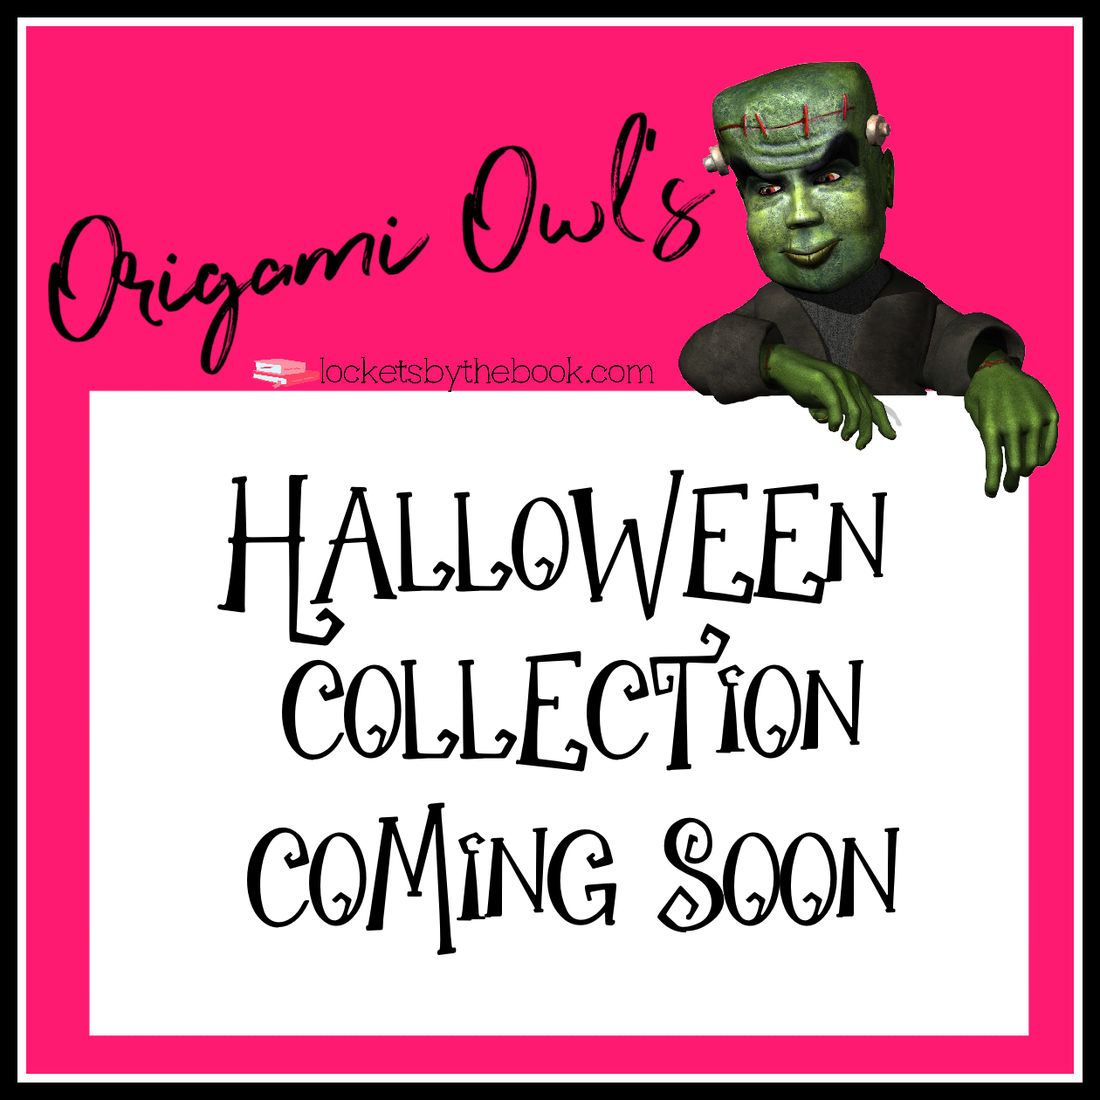 Halloween 2020 Origami Owl Origami Owl Halloween Collection 2020   Direct Sales, Party Plan